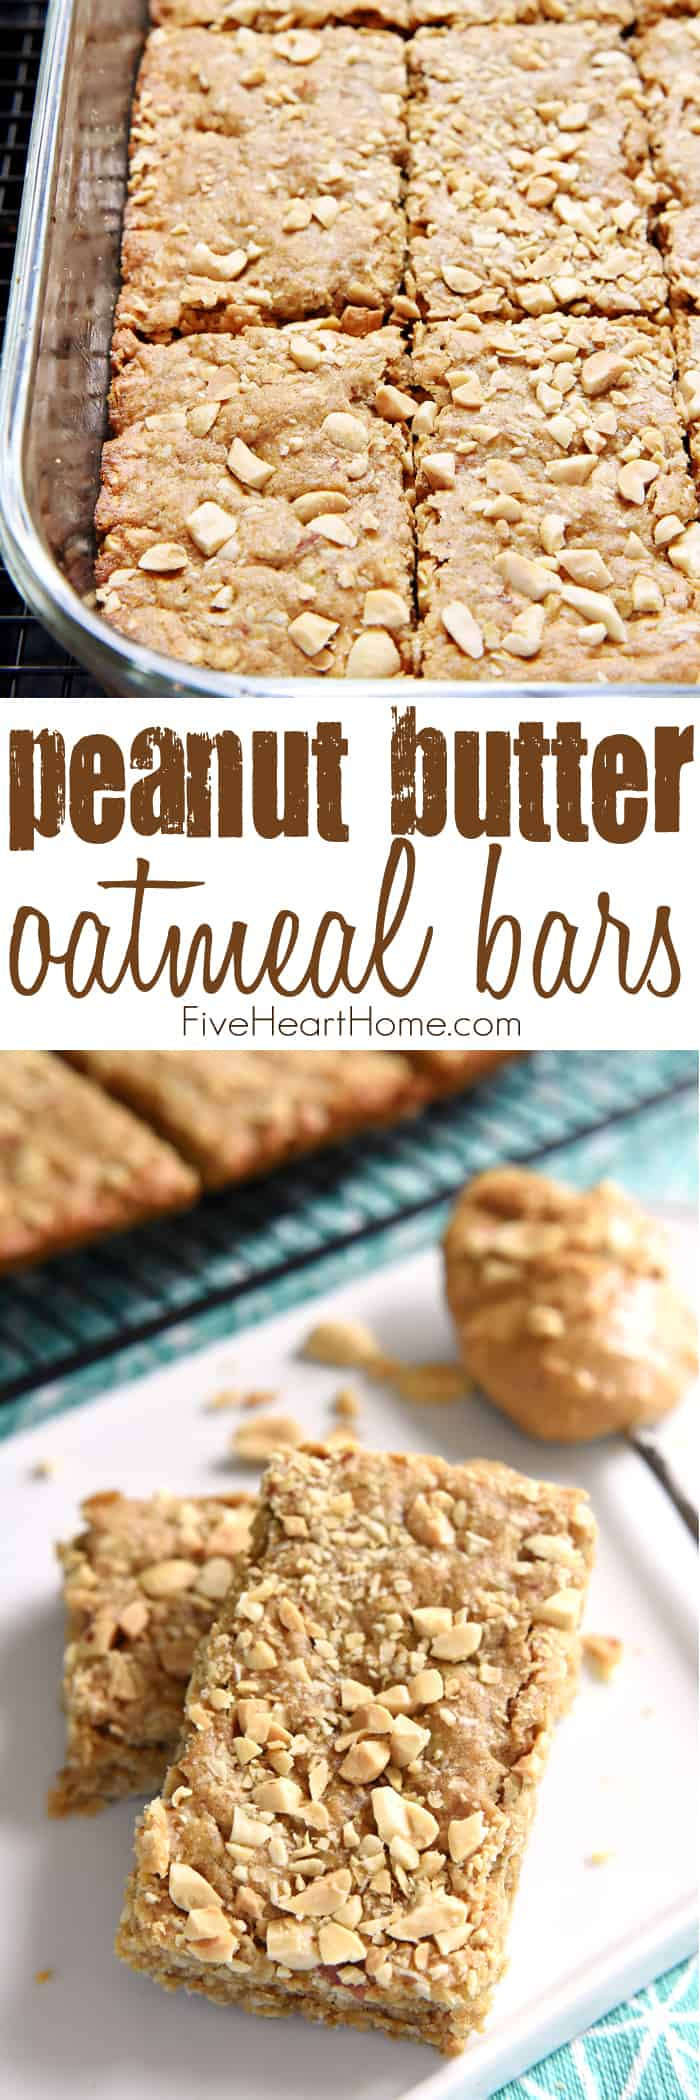 Peanut Butter Oatmeal Bars Collage with Text Overlay